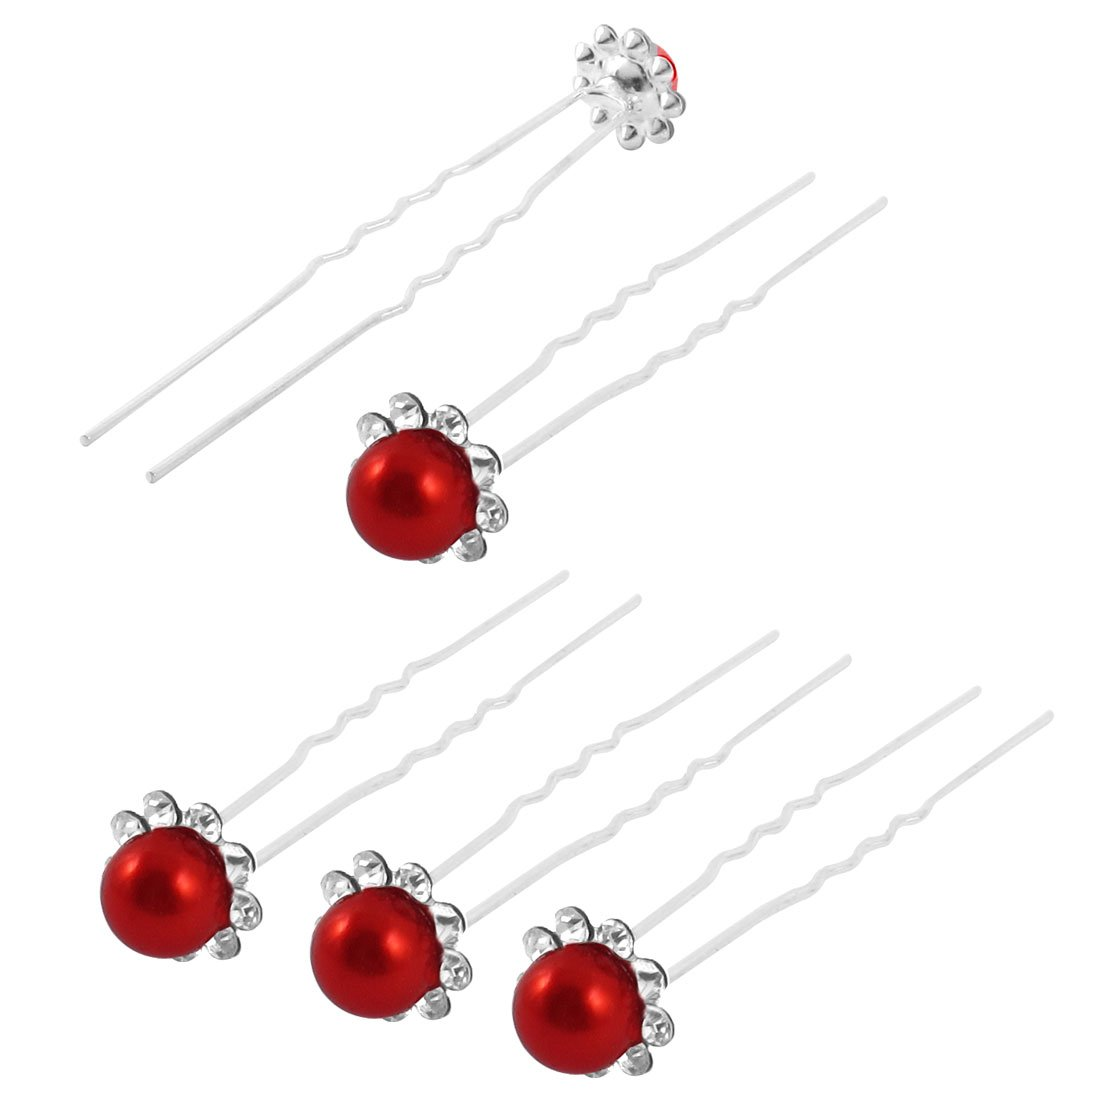 uxcell Wedding Bridal Bridesmaid Imitation Pearl Flower Crystal Decor Hair Pin Clip 5pcs Red a15031000ux0140